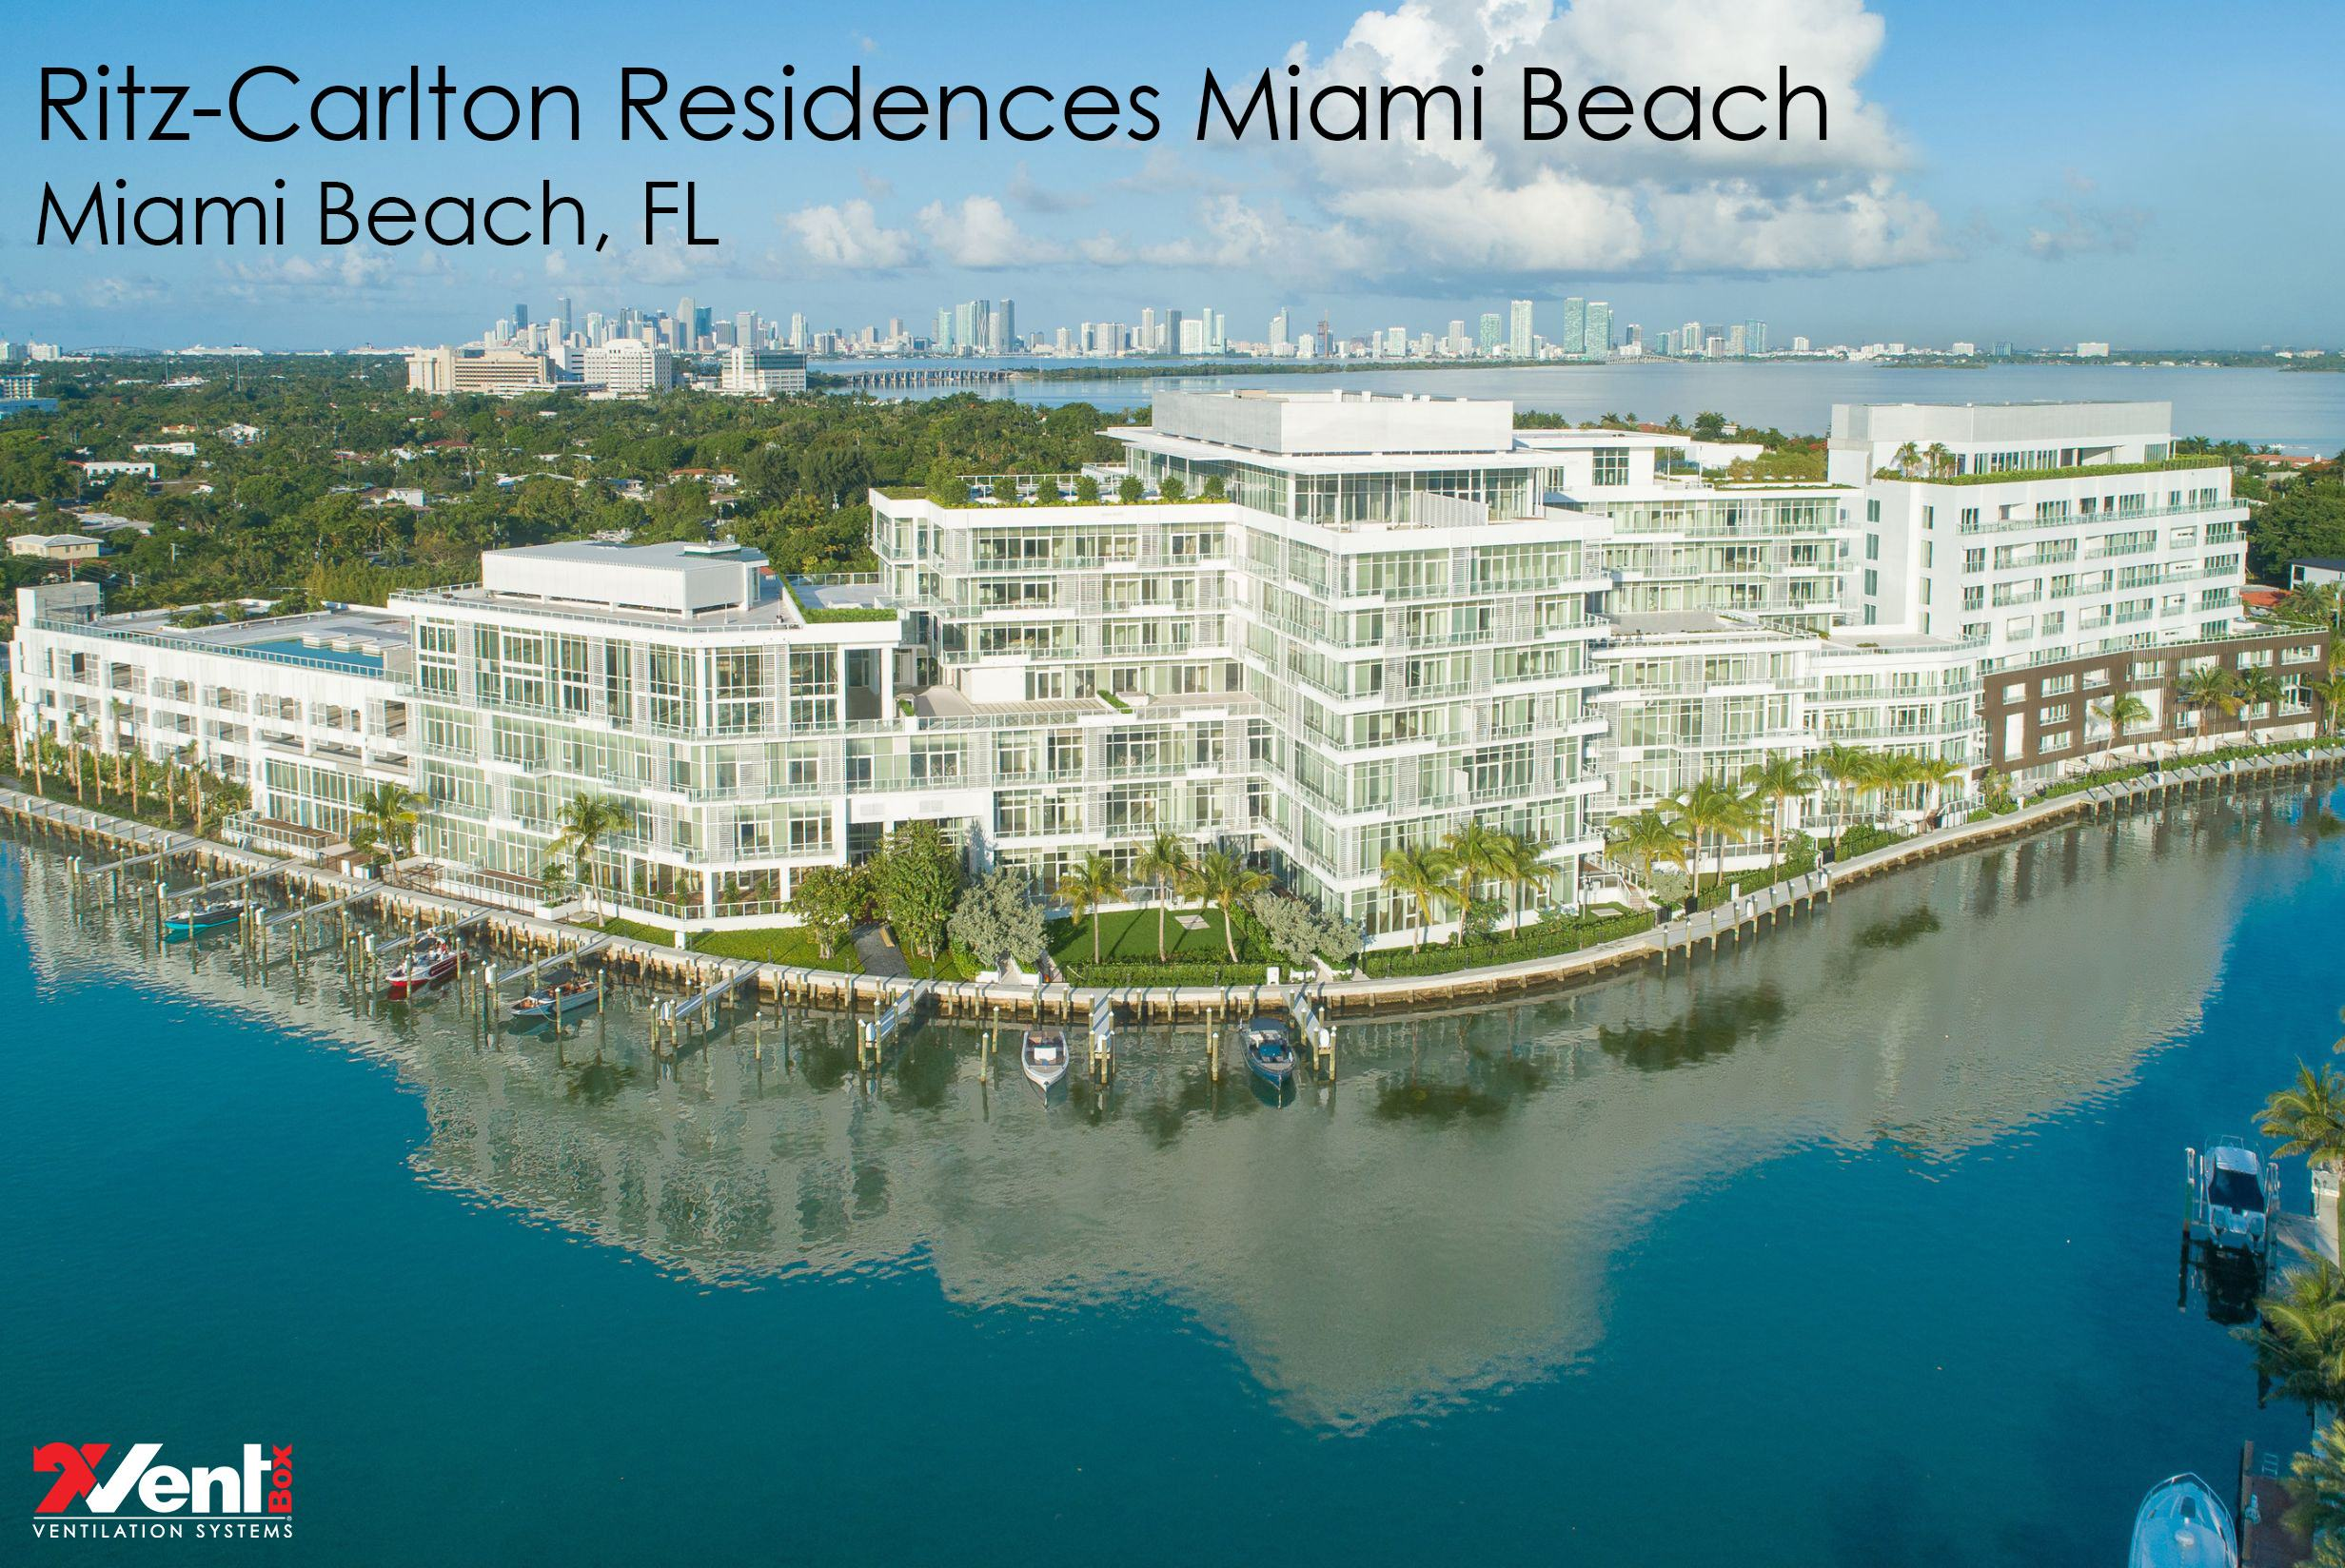 Ritz-Carlton Residences Miami Beach